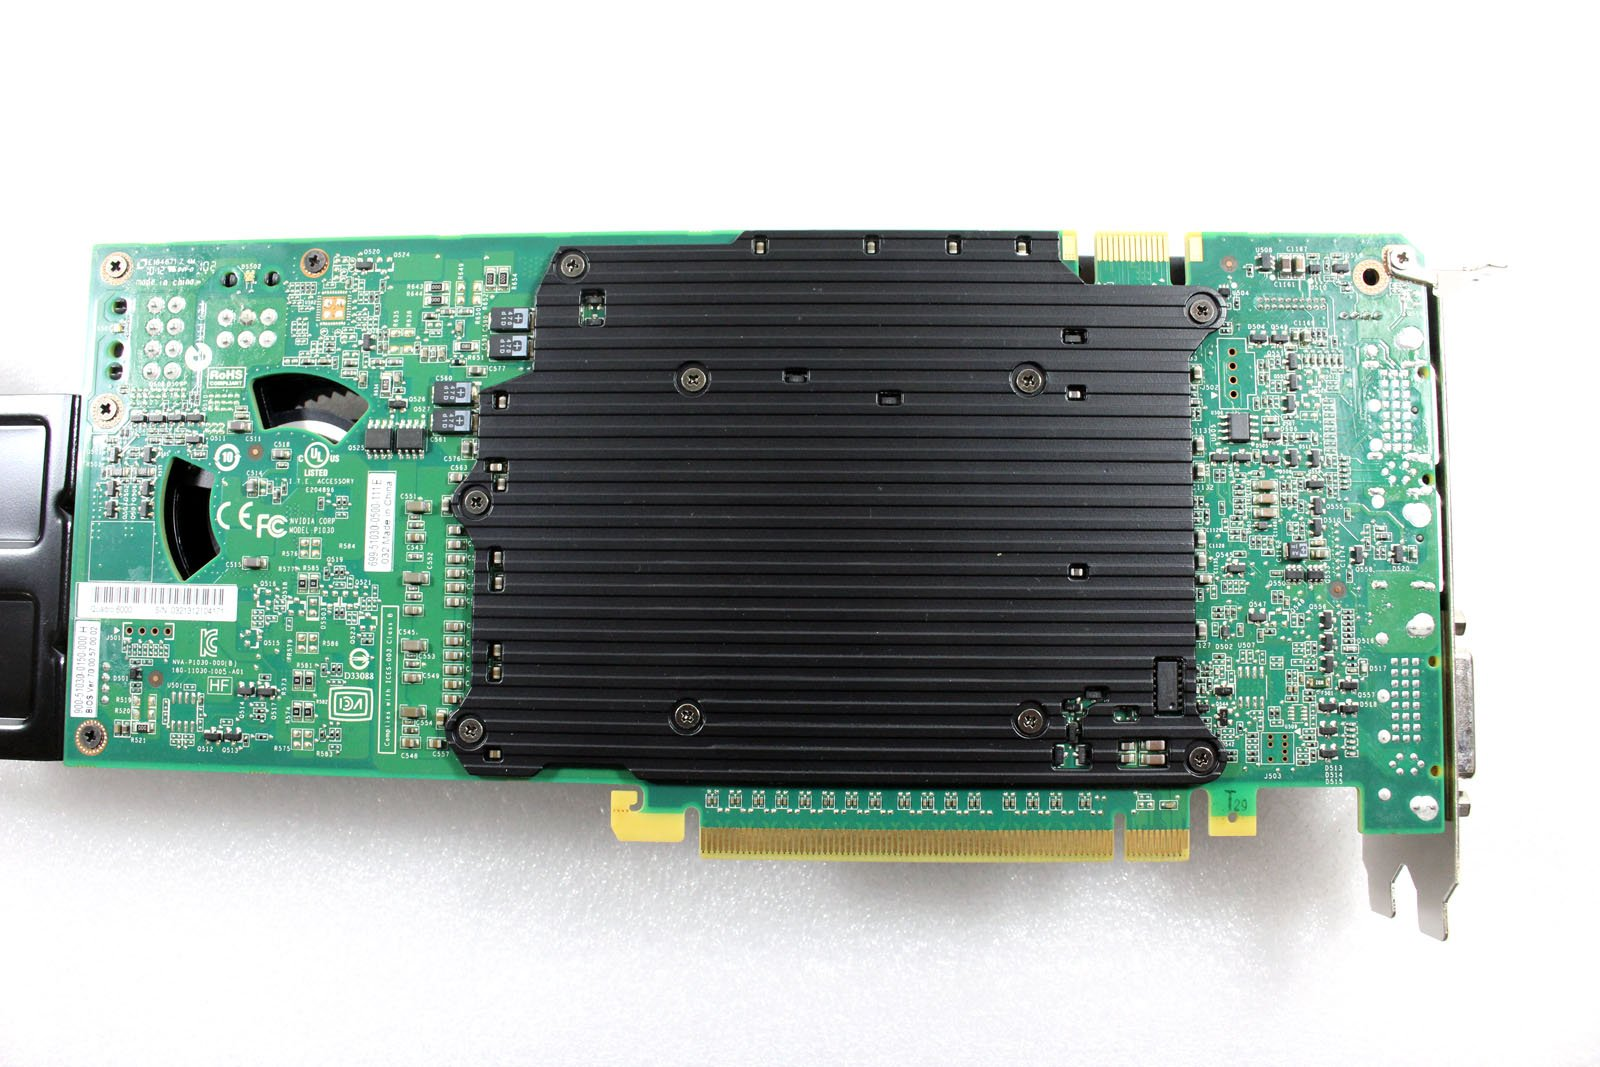 HP 616078-001 NVIDIA Quadro 6000 PCIe graphics card - With 6.0GB GDDR5 GPU memory, max resolution 2560x1600, max power consumption 204Watt, one Dual Link DVI-I and two DisplayPorts connections by NVIDIA (Image #4)